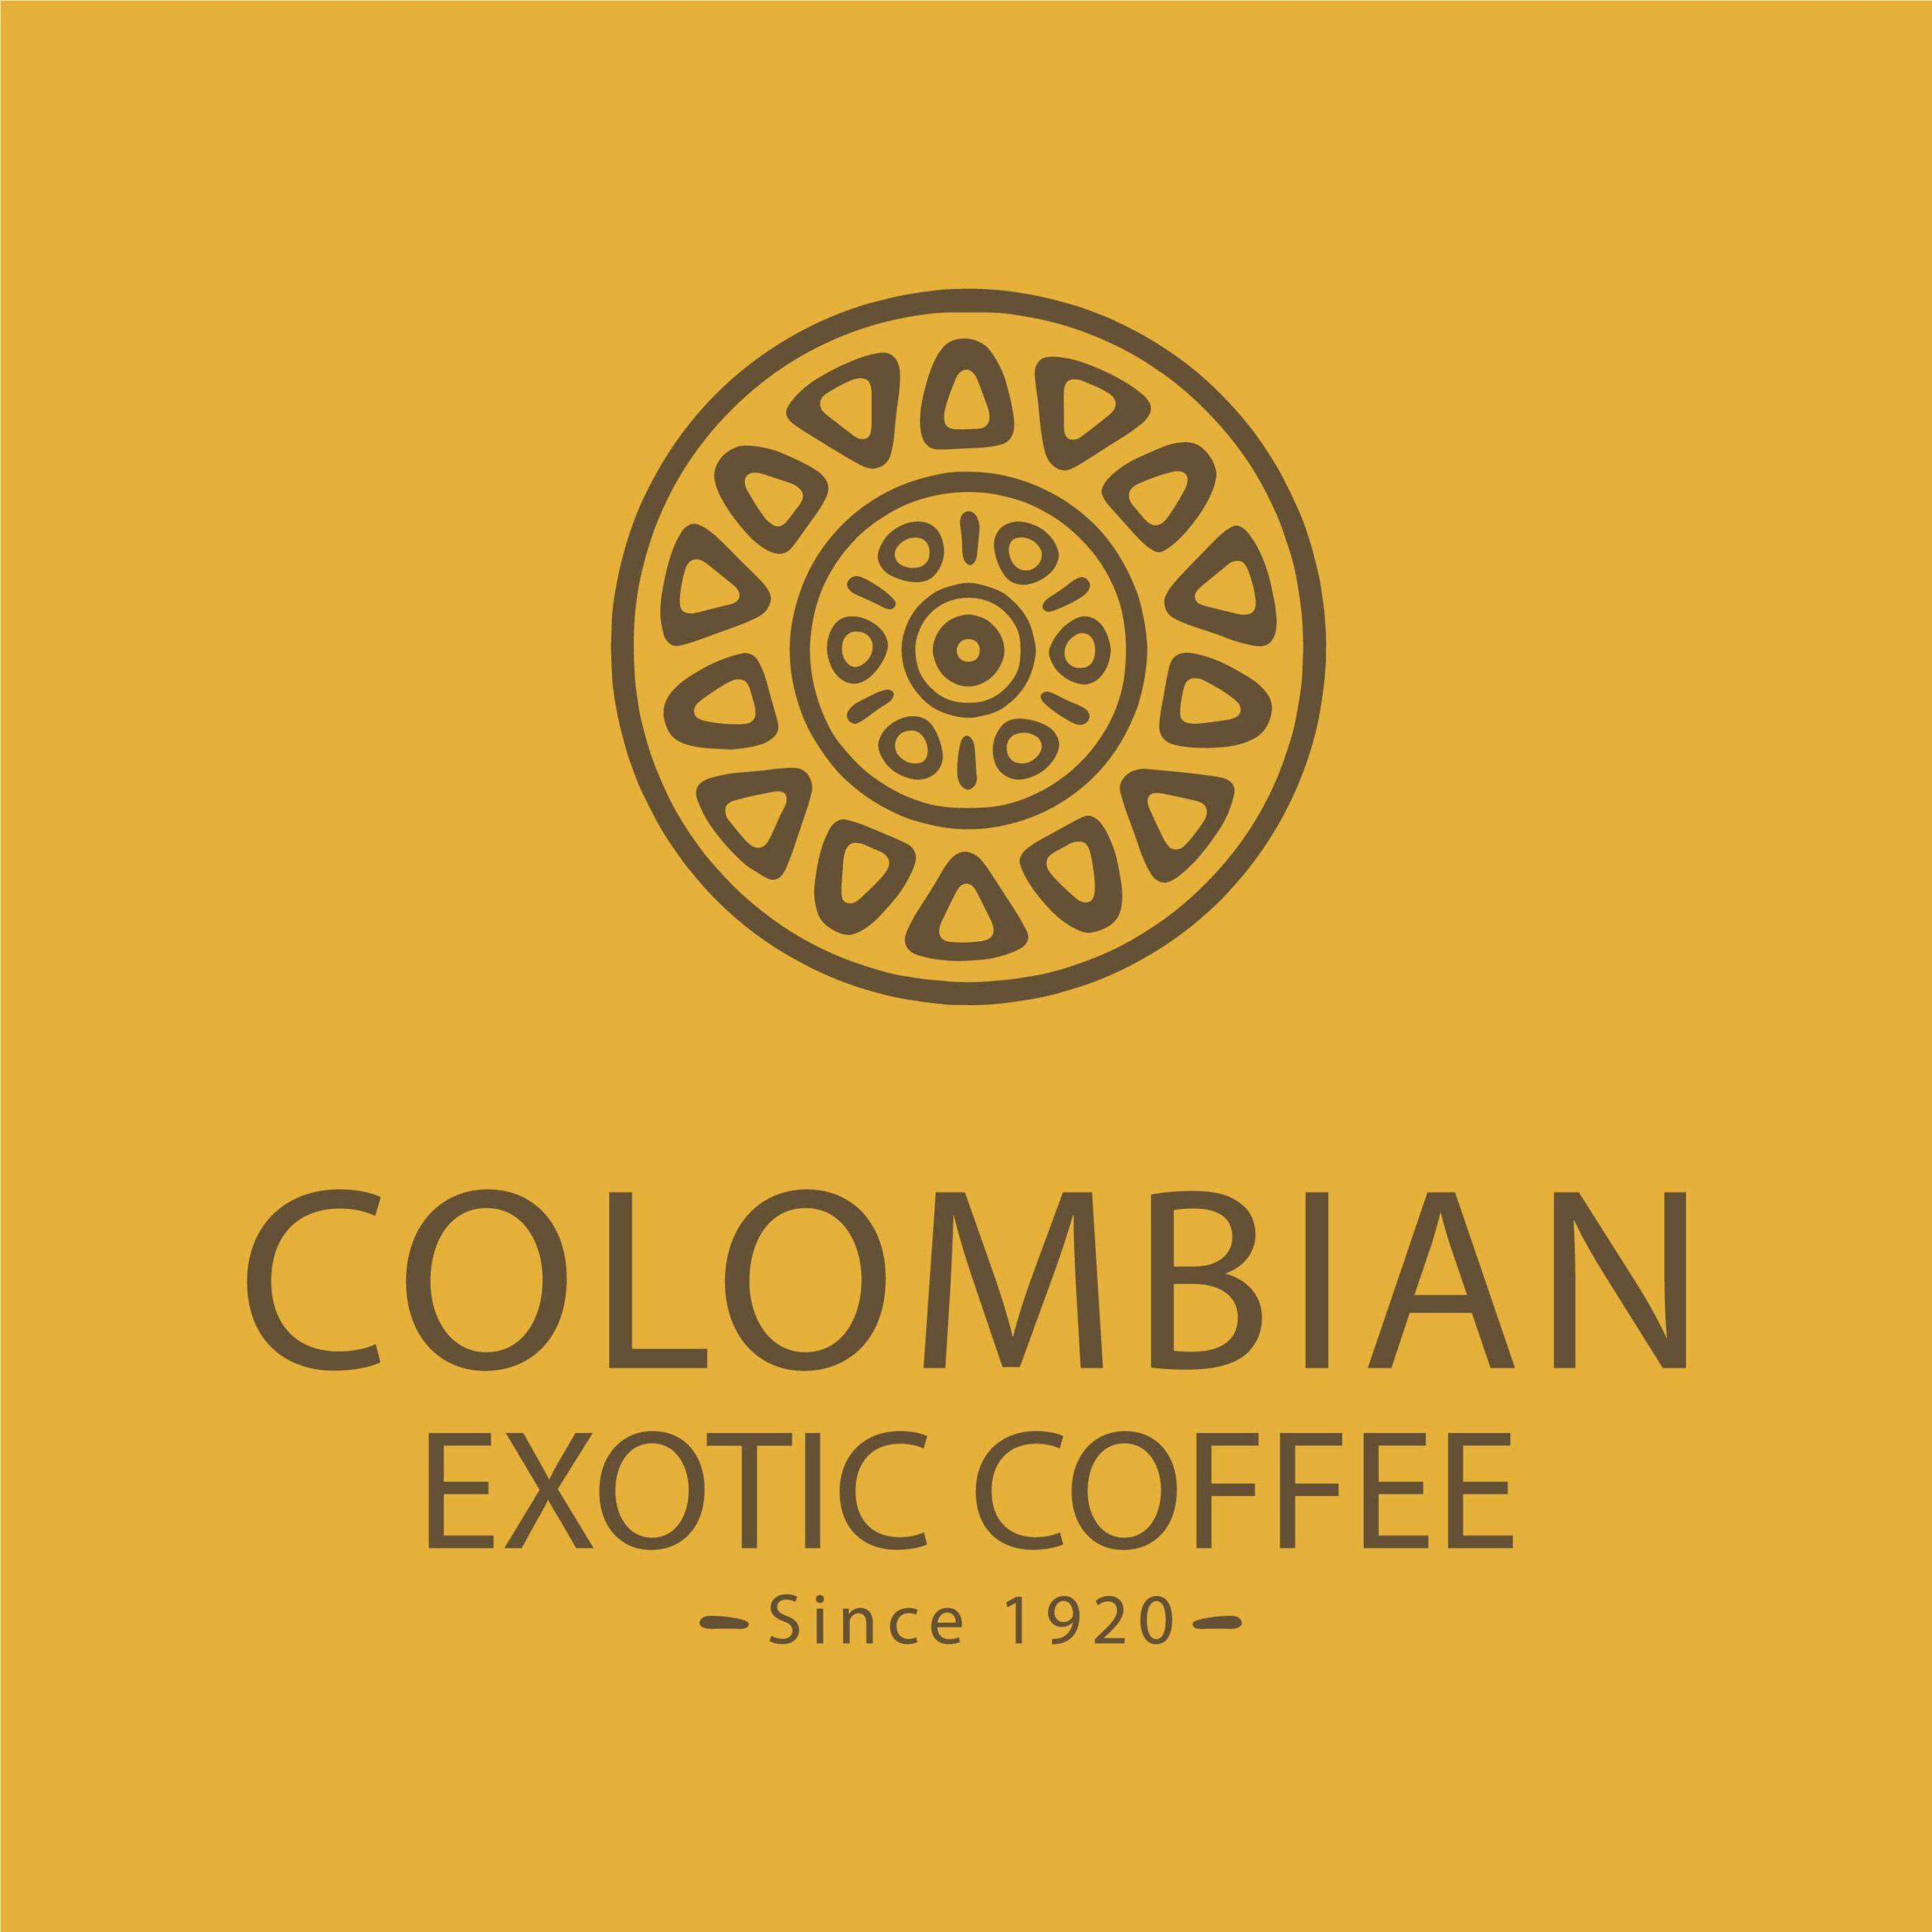 Colombian Exotic Coffee logo